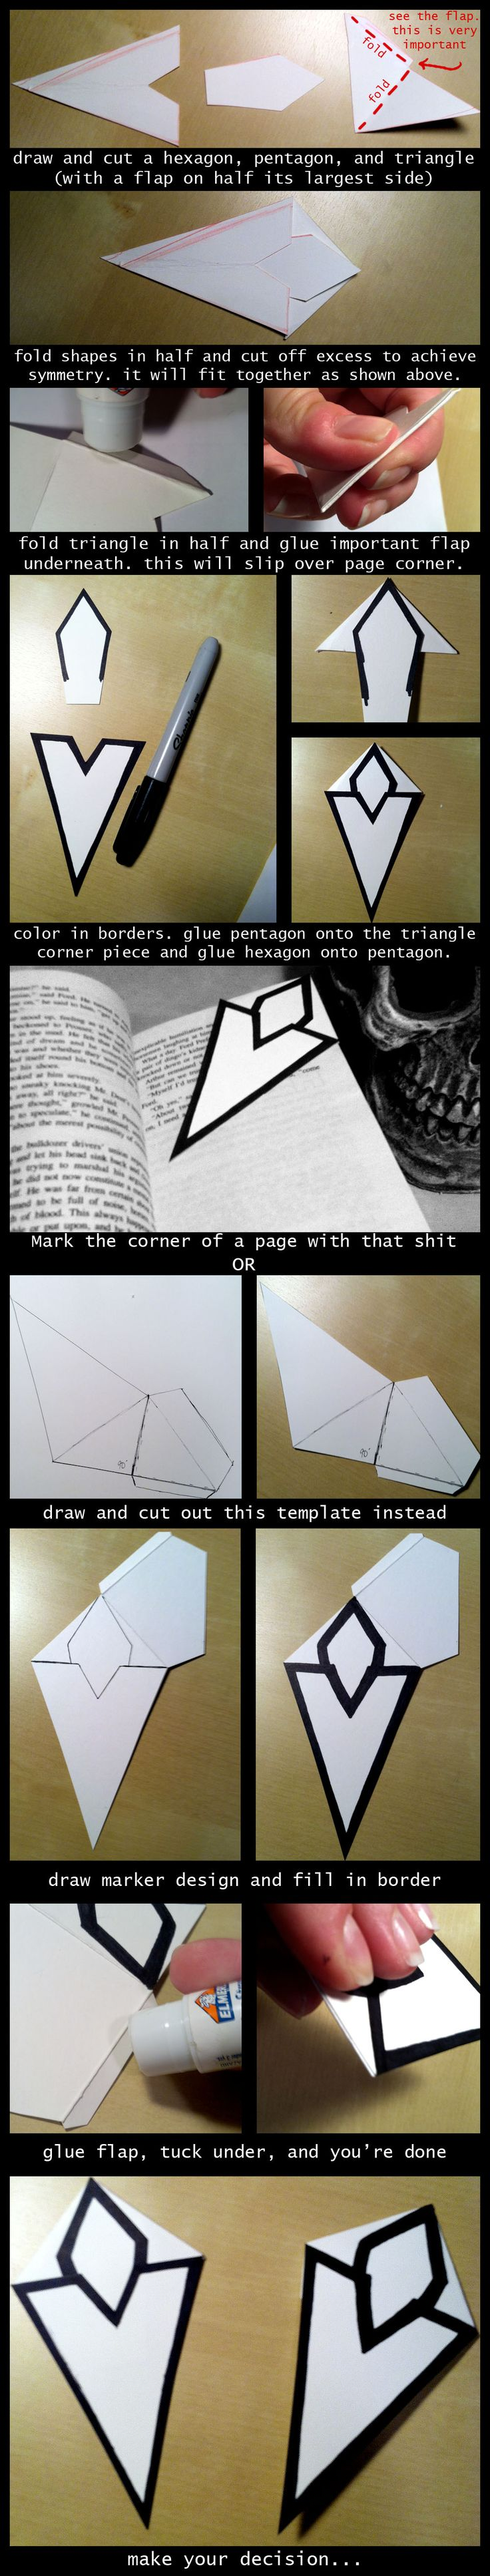 Two DIY Skyrim Quest Bookmarker Tutorials